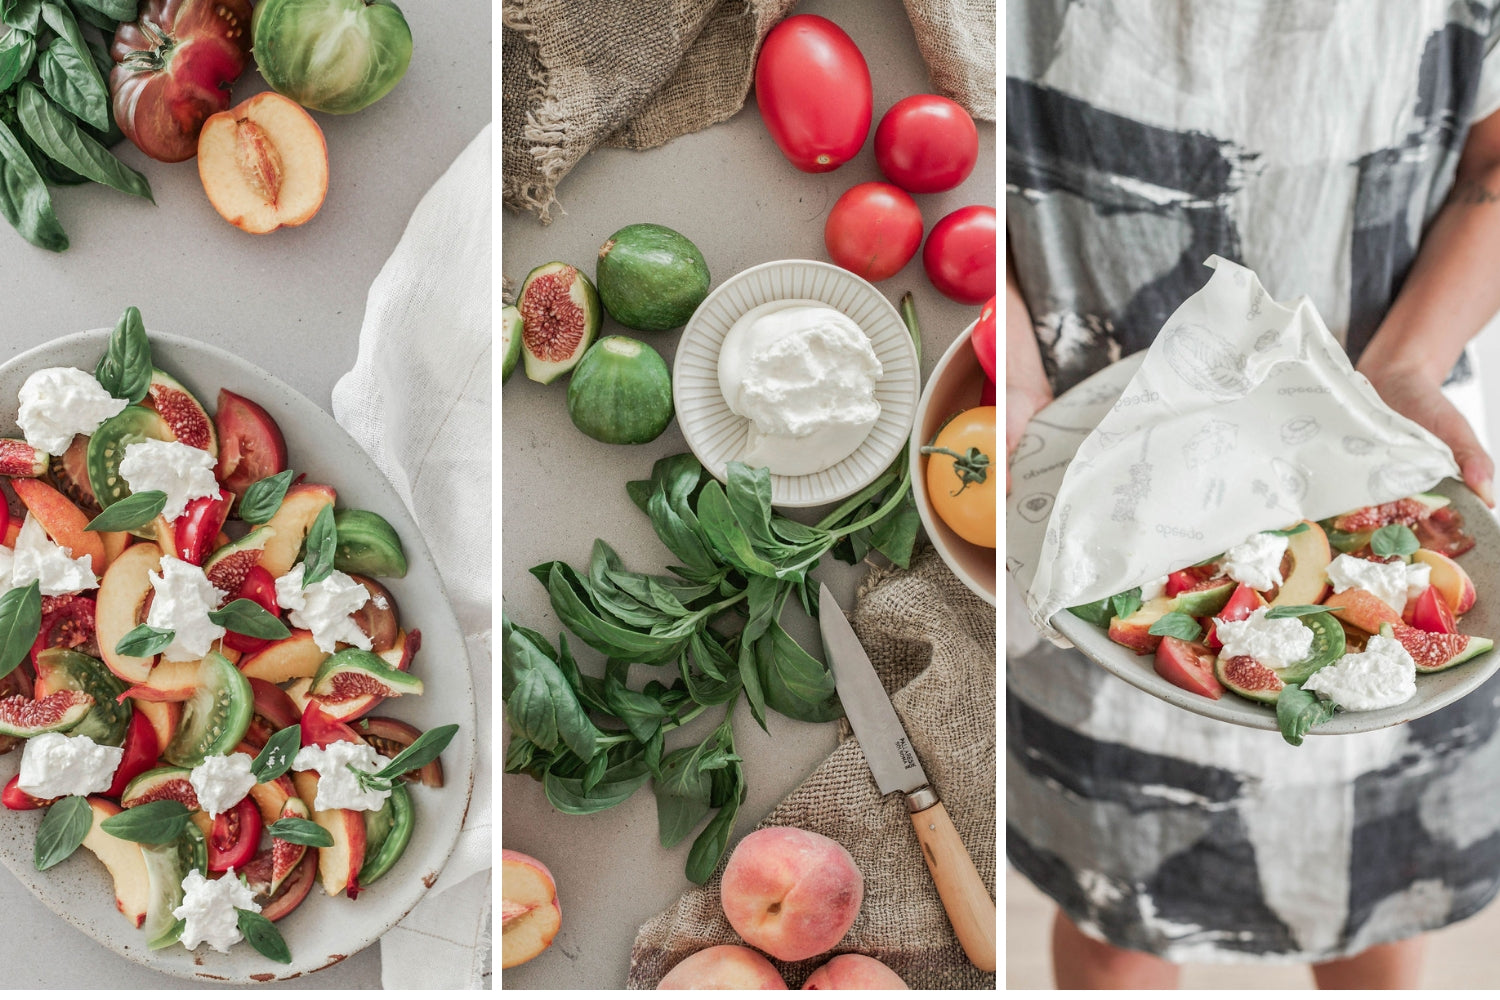 Burrata Salad with Tomatoes | Abeego | Reusable Beeswax Food Wrap that Breathes